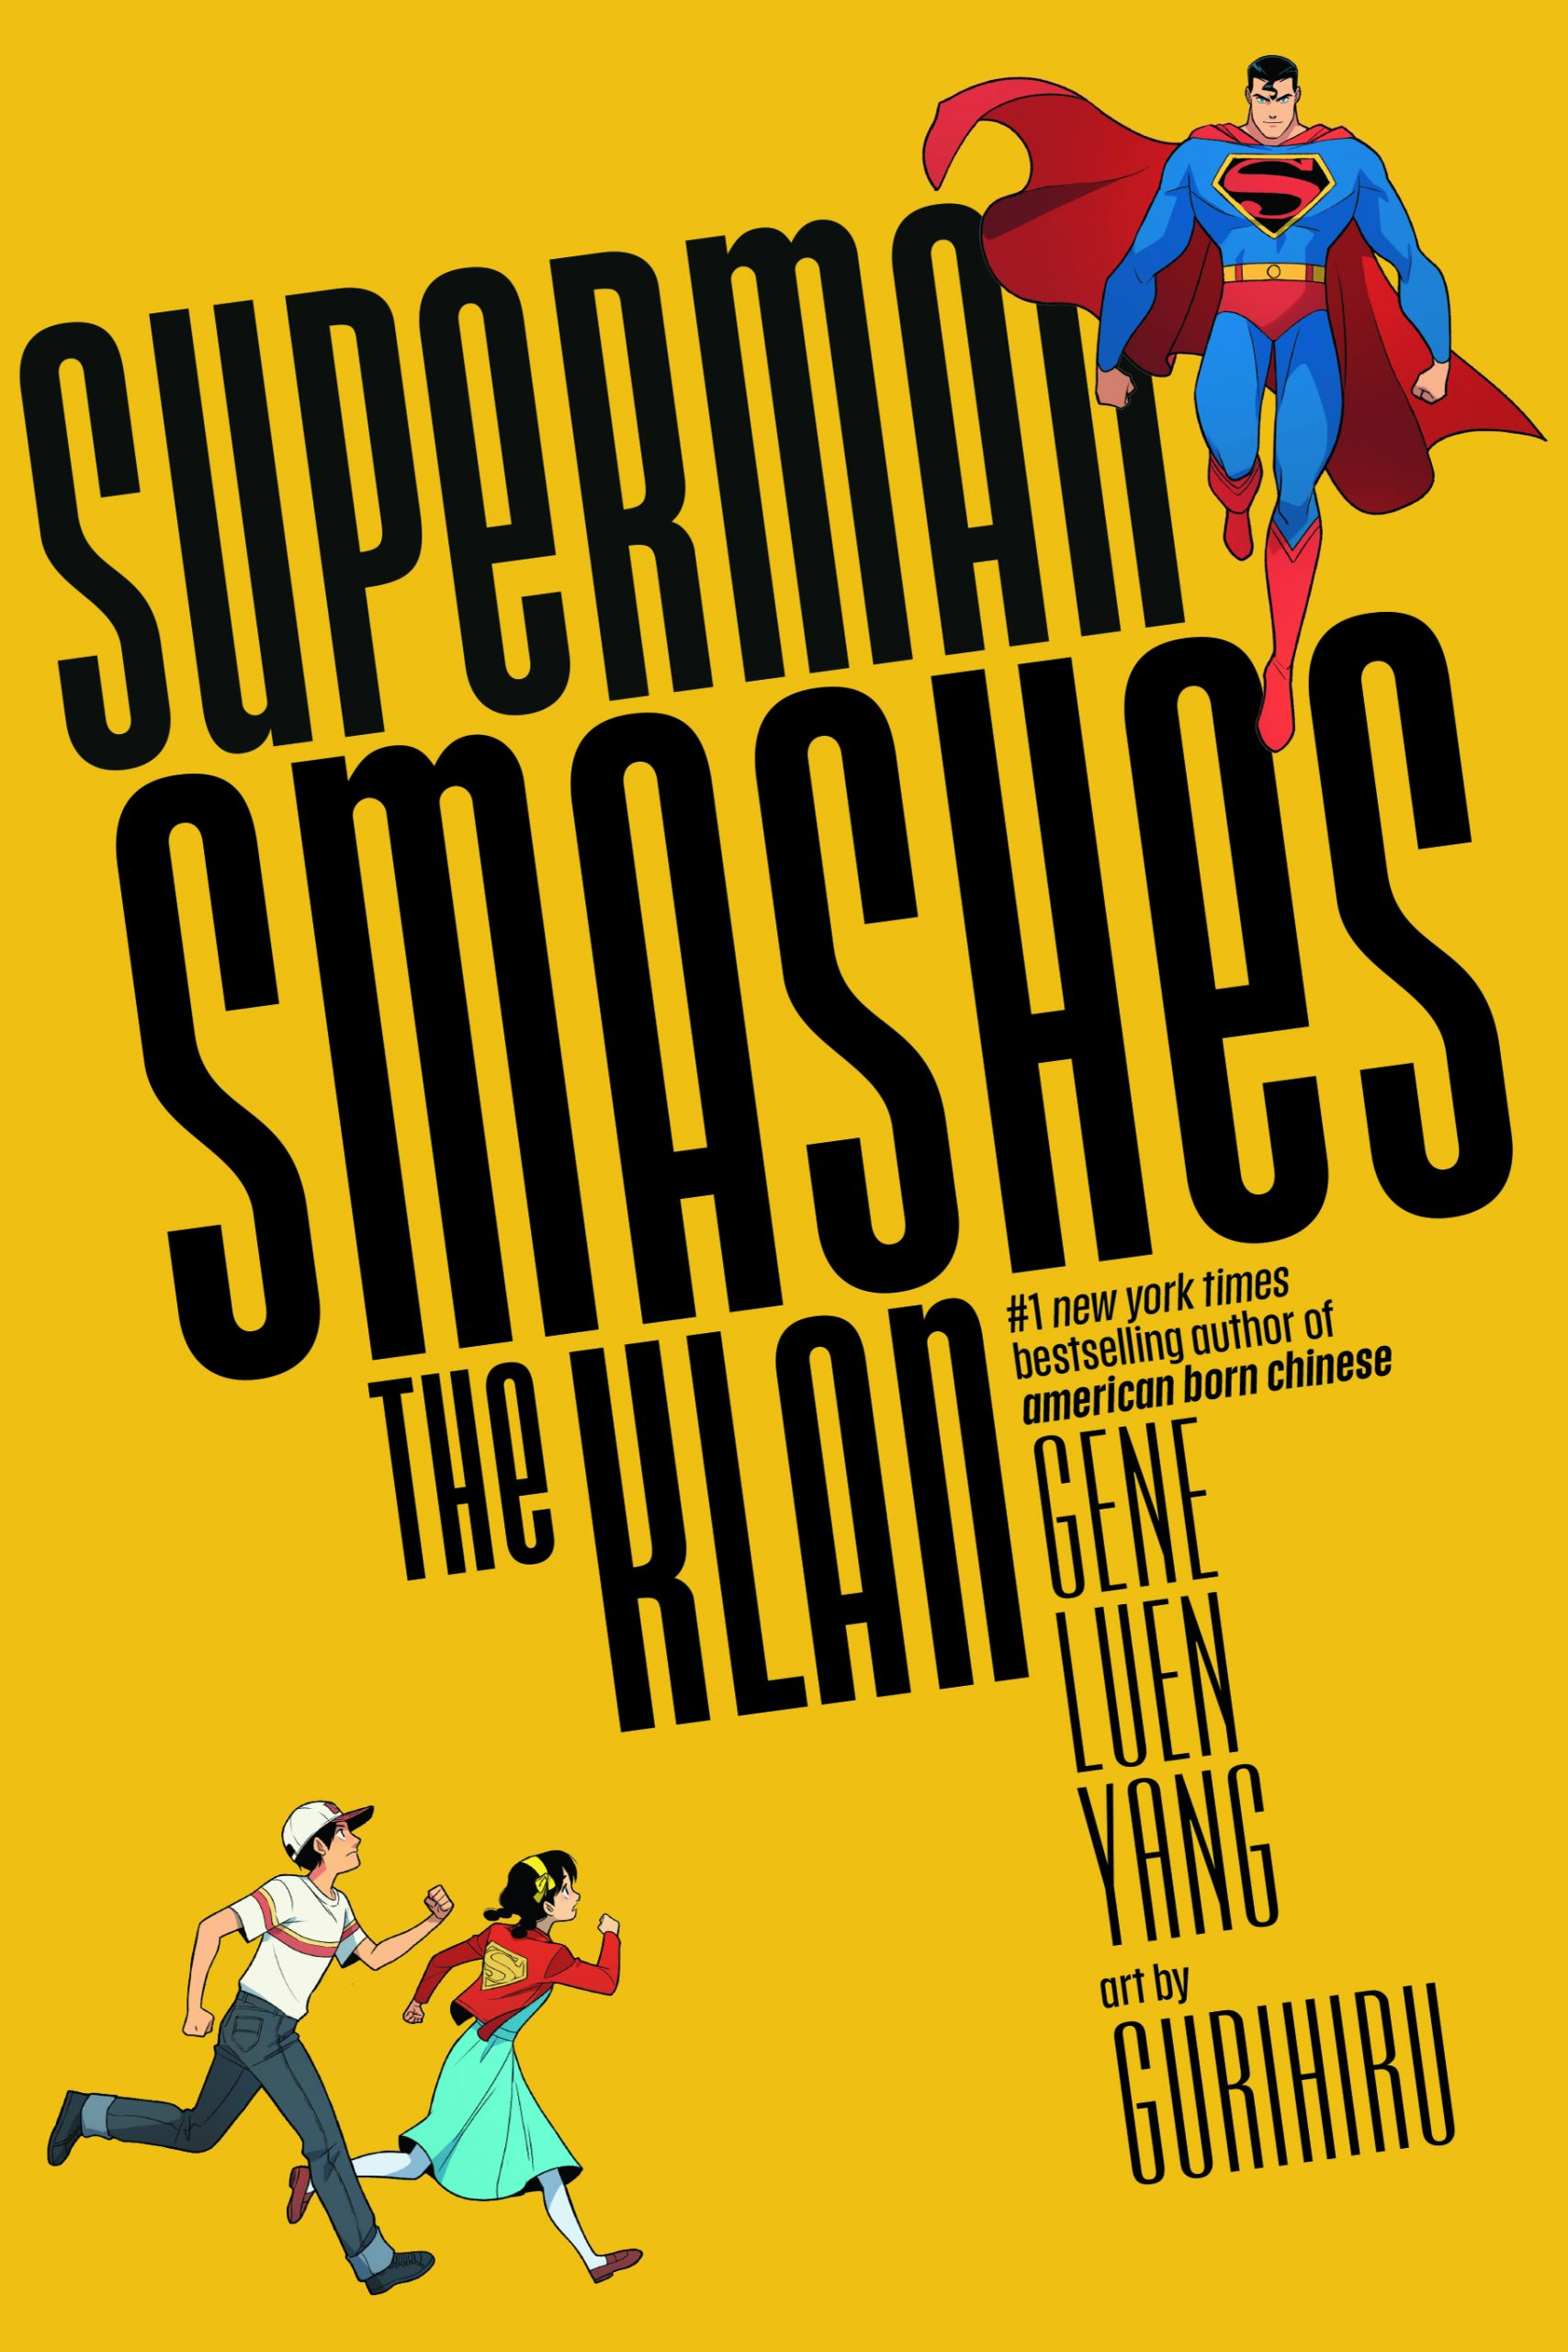 'Superman Smashes the Klan' gets new trailer and collection release date for May 12, 2020